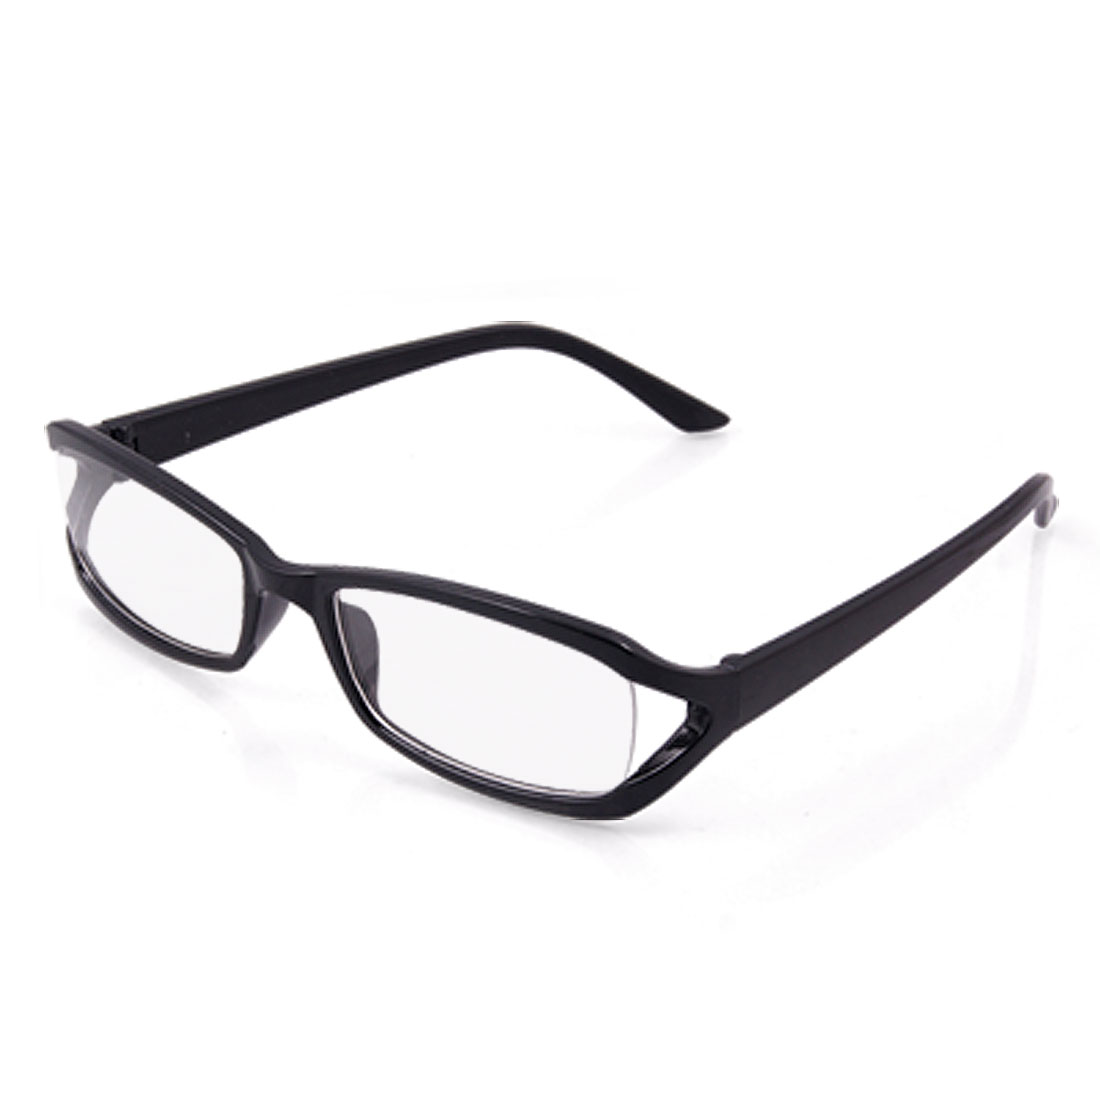 Black Polished Plastic Full Rim Clear Lens Glasses